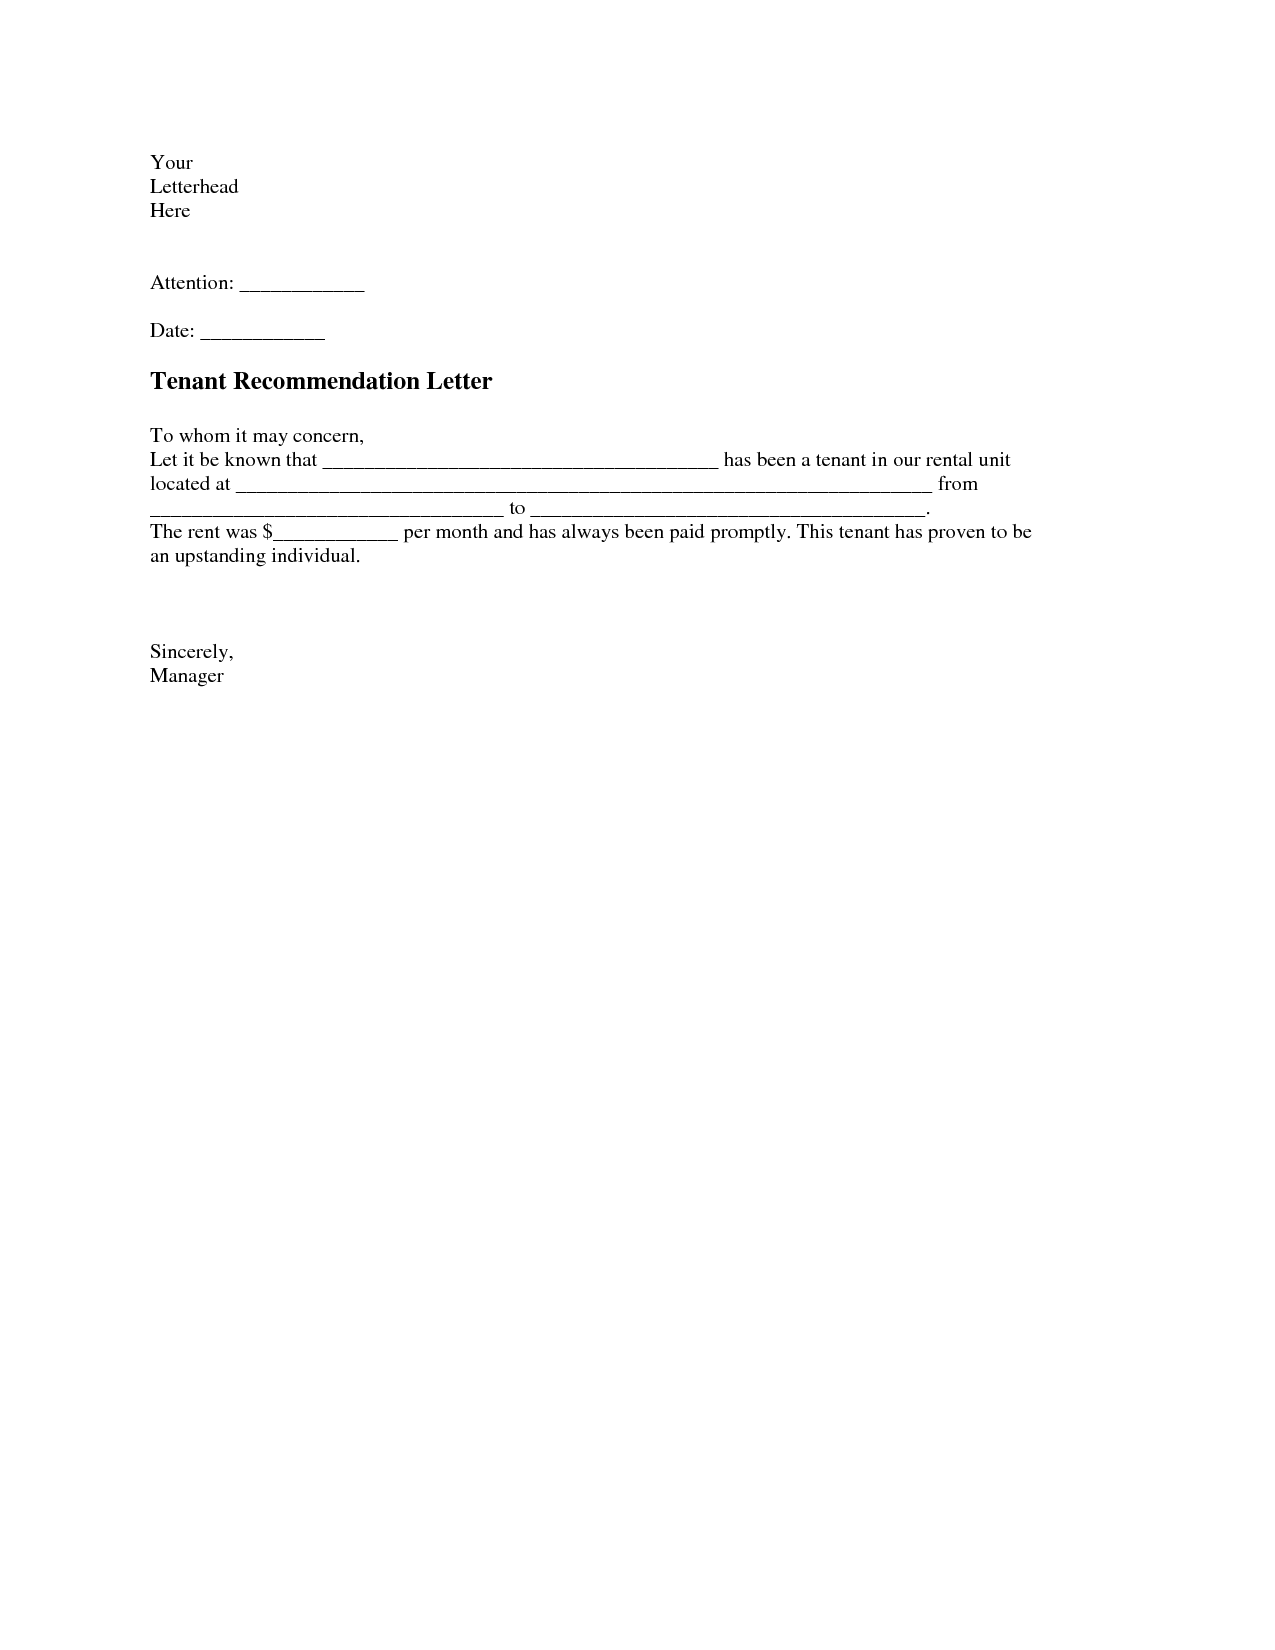 Referral Letter Referral Letter Example Referral Cover Letter Email